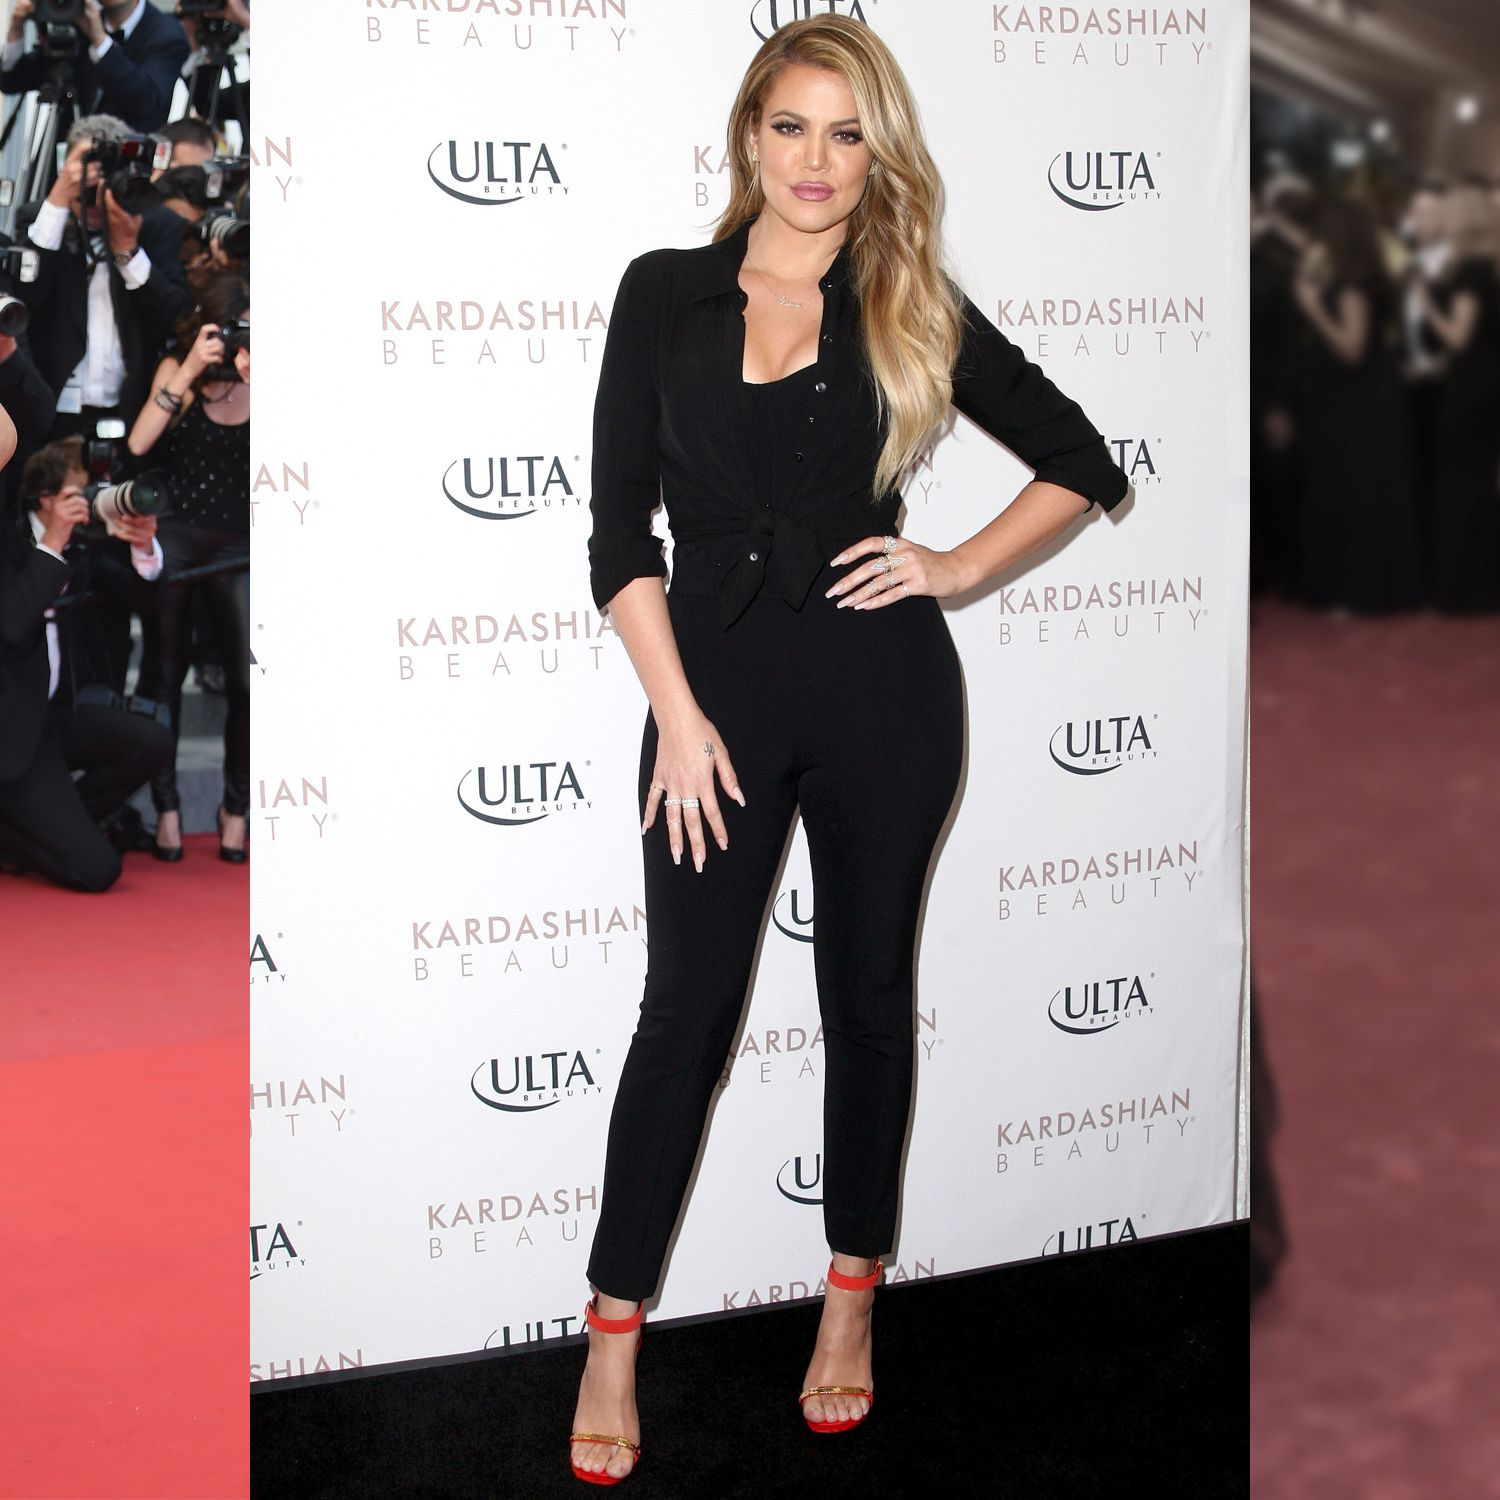 """<strong>The Celebs:</strong> Adriana Lima, Khloé Kardashian, Gigi Hadid<strong>The Workout:</strong> Boxing<strong>The Body Benefits:</strong> Shadow boxing is the biggest new boutique fitness craze&#x3B; the training exercises deliver ultratoned arms, improved core strength and stability and intense fat burning.<strong>The Hot Spots:</strong> <a target=""""_blank"""" href=""""http://shadowboxnyc.com/"""">Shadowbox</a>, <a target=""""_blank"""" href=""""https://overthrownyc.com/"""">Overthrow</a>, <a target=""""_blank"""" href=""""http://gothamgymnyc.com/"""">Gotham Gym</a>"""